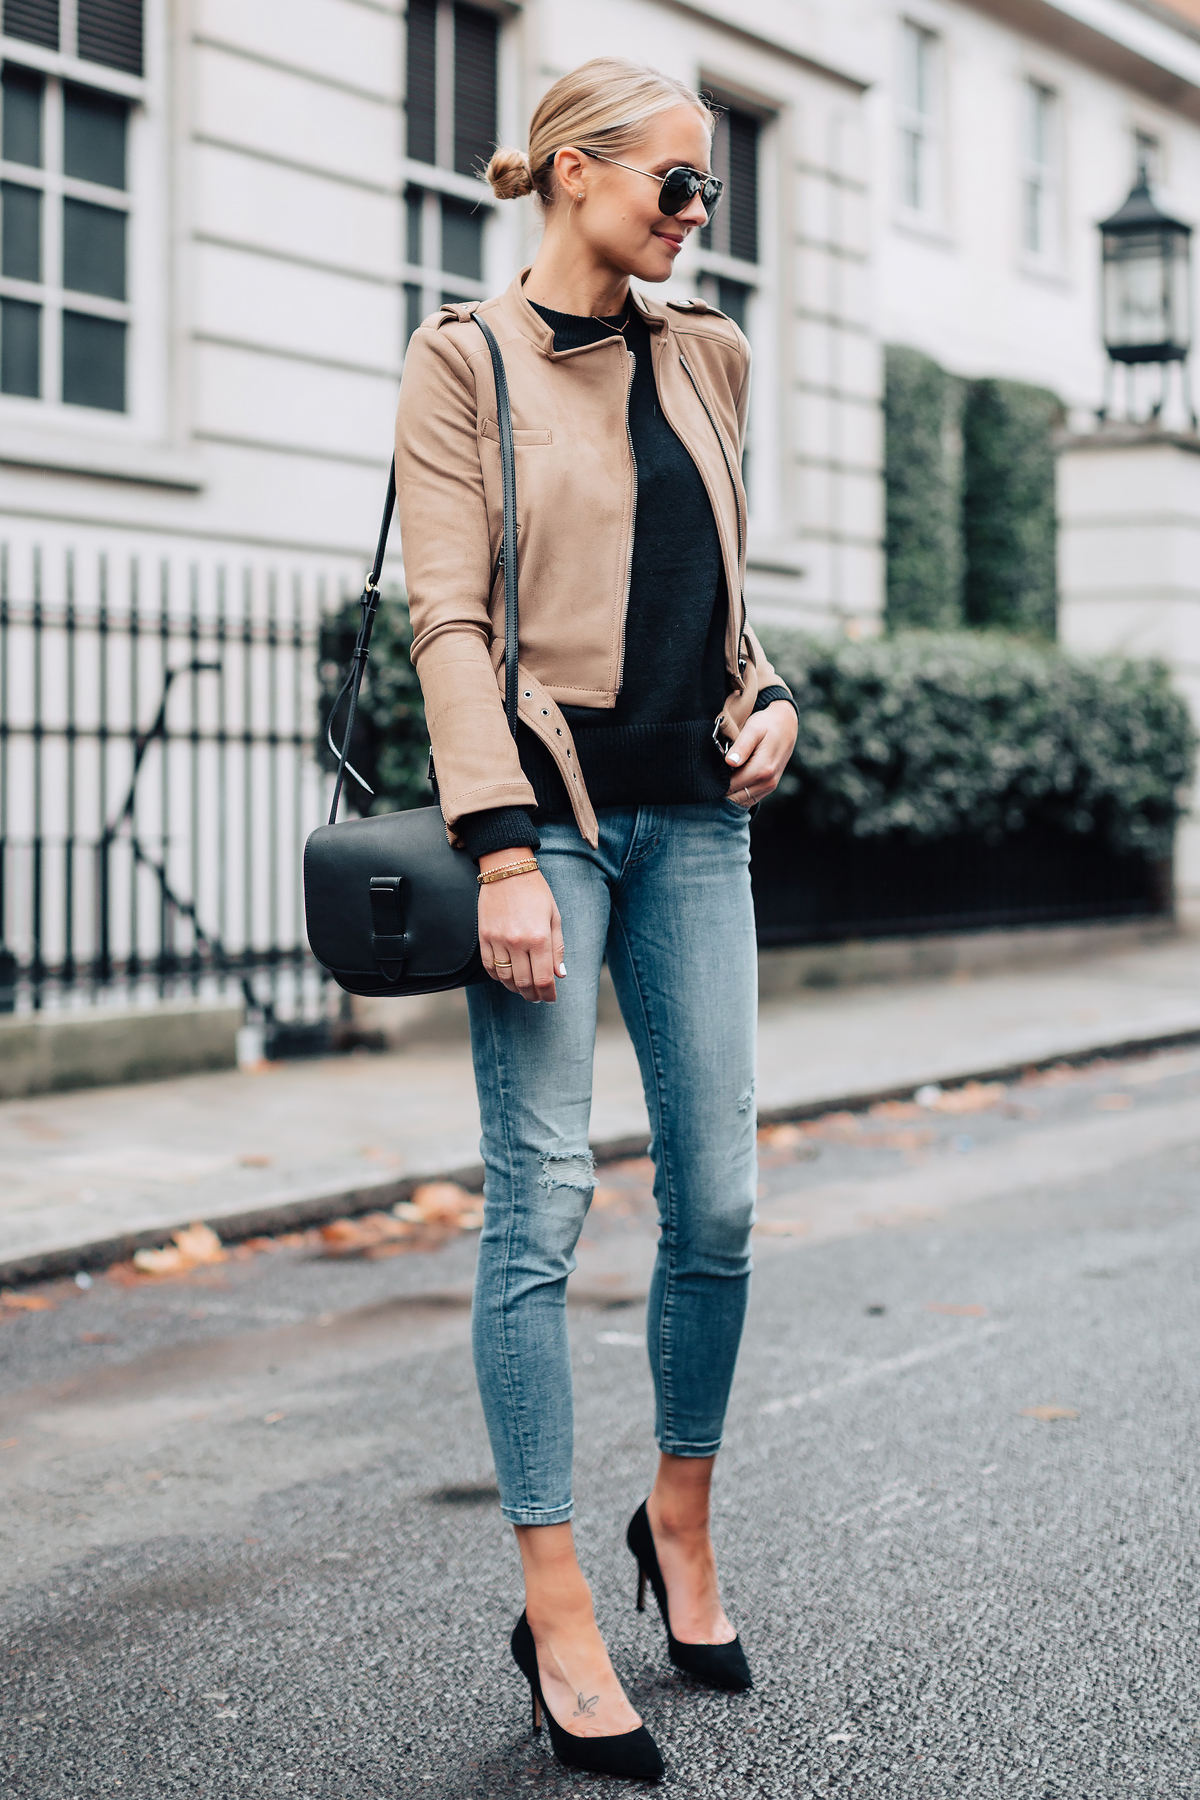 Blonde Woman Wearing Tan Suede Moto Jacket Black Sweater Denim Skinny Jeans Black Pumps Black Handbag Fashion Jackson San Diego Fashion Blogger London Street Style